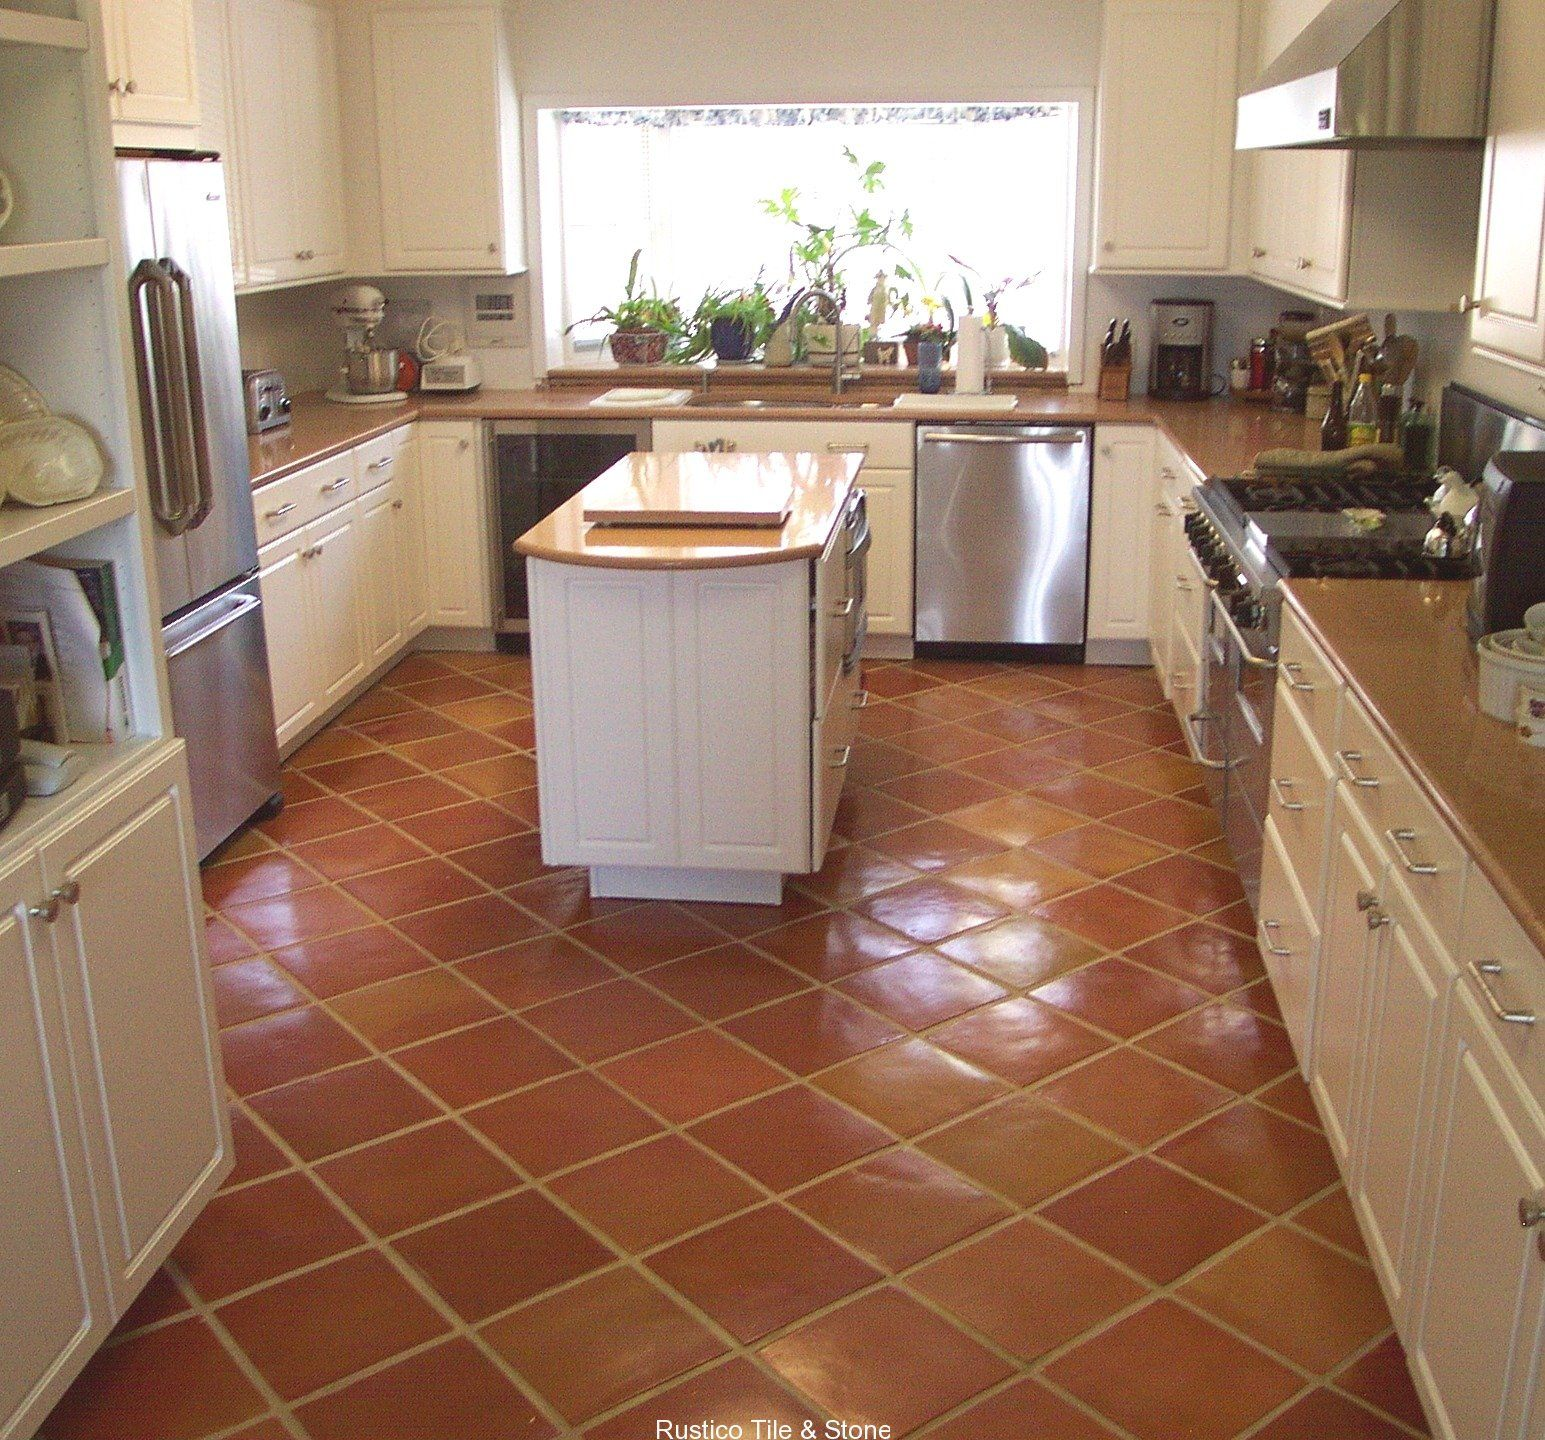 Tile laid diagonally white cabinets against warm terra cotta tile laid diagonally white cabinets against warm terra cotta dailygadgetfo Images